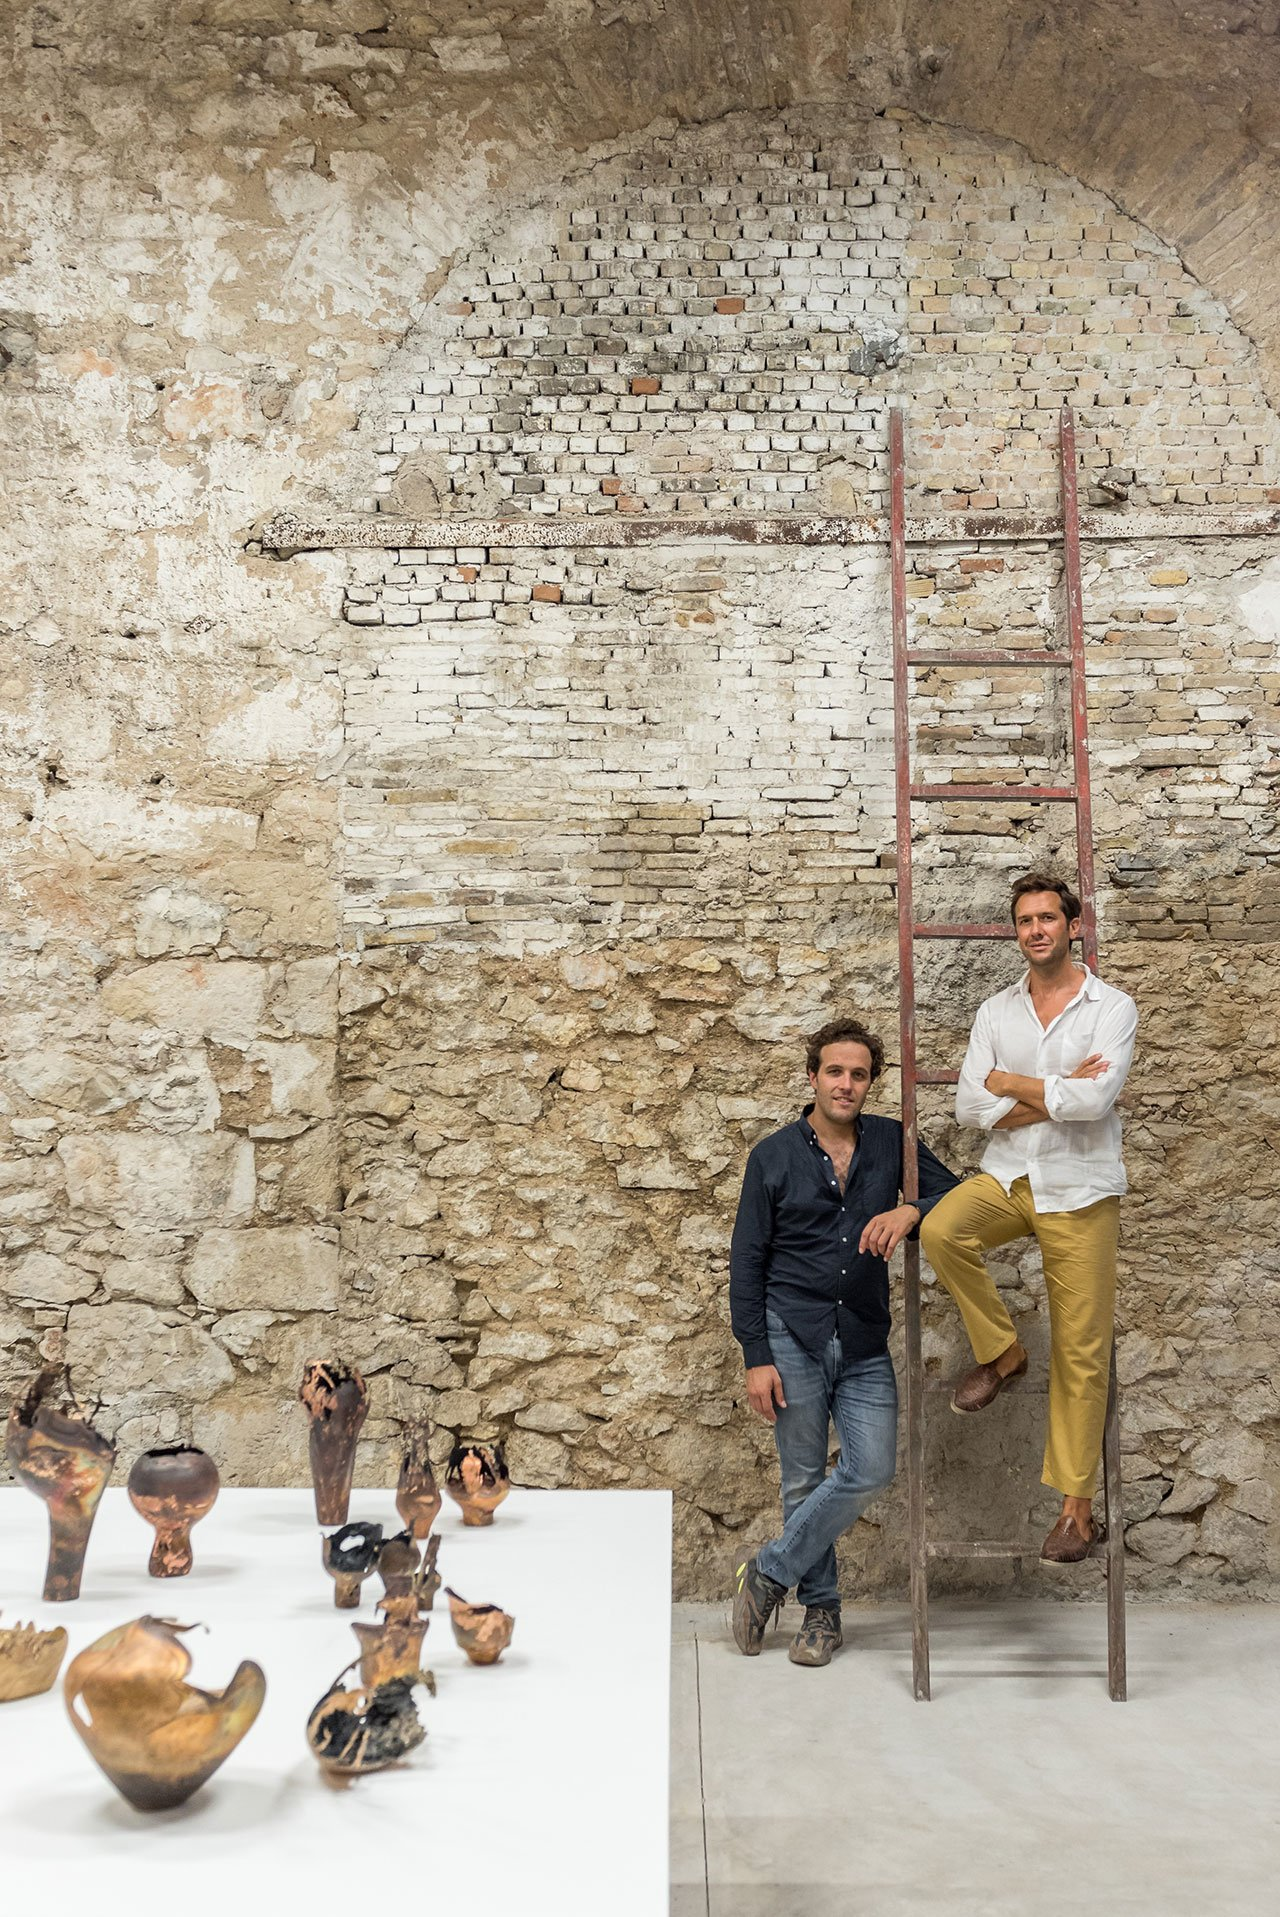 Carwan gallery founders, Nicolas Bellavance-Lecompte (right) and Quentin Moyse (left). Photo by Giorgos Sfakianakis.